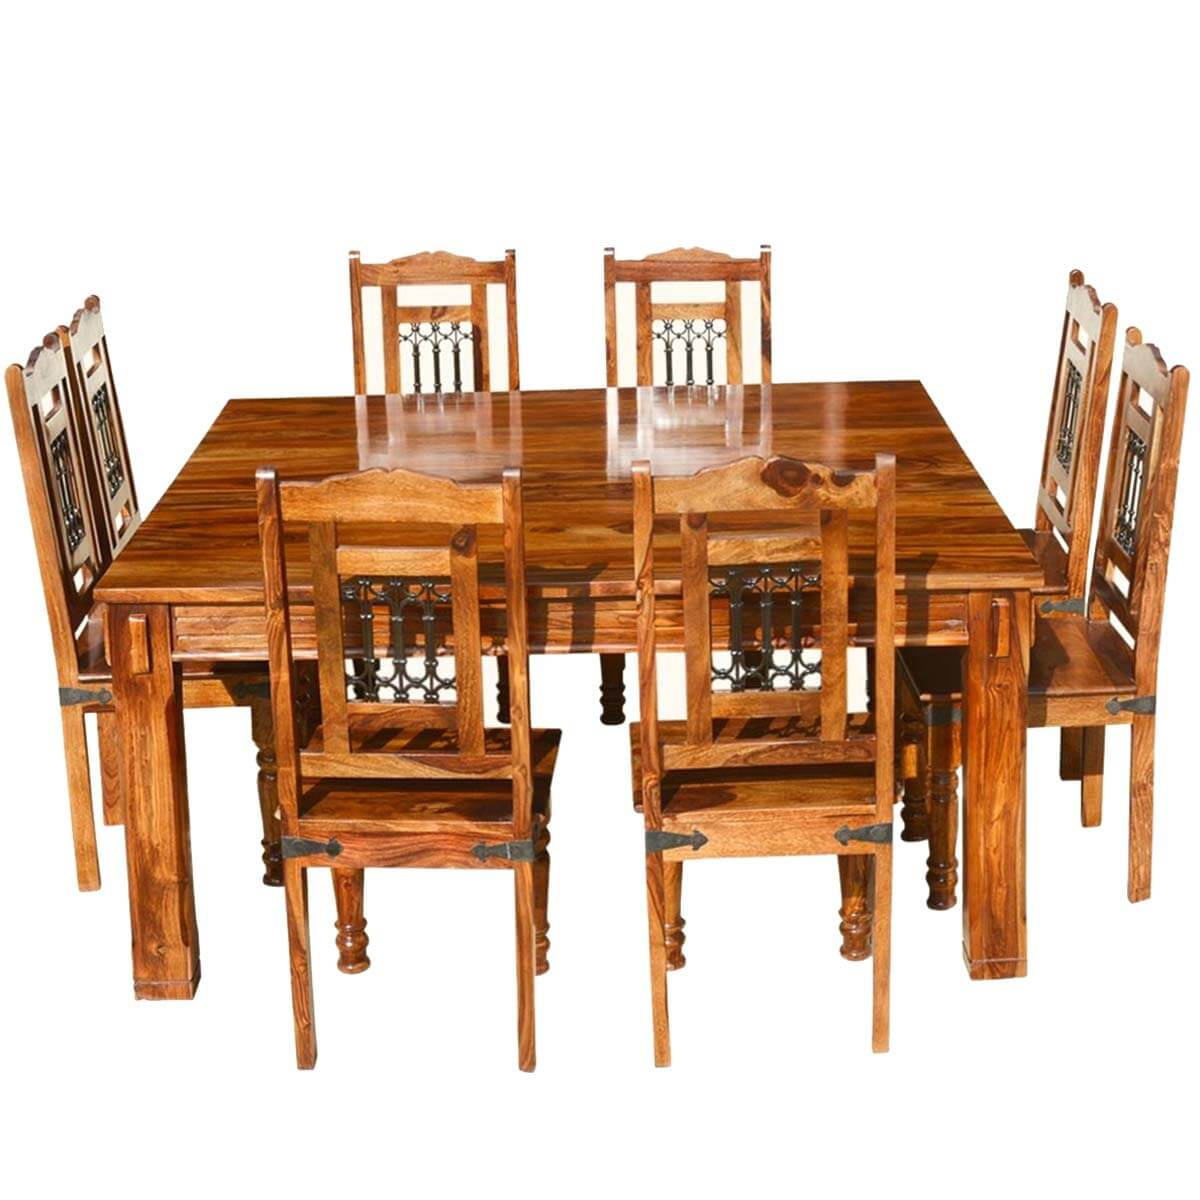 Transitional Solid Wood Rustic Square Dining Table Chairs Set. Big Closet. Coyle Carpet. Wine Cabinet Bar Furniture. White Ice Appliances. Ladder Towel Rack. Royal Blue Sectional. Square End Tables. Greige Paint Colors